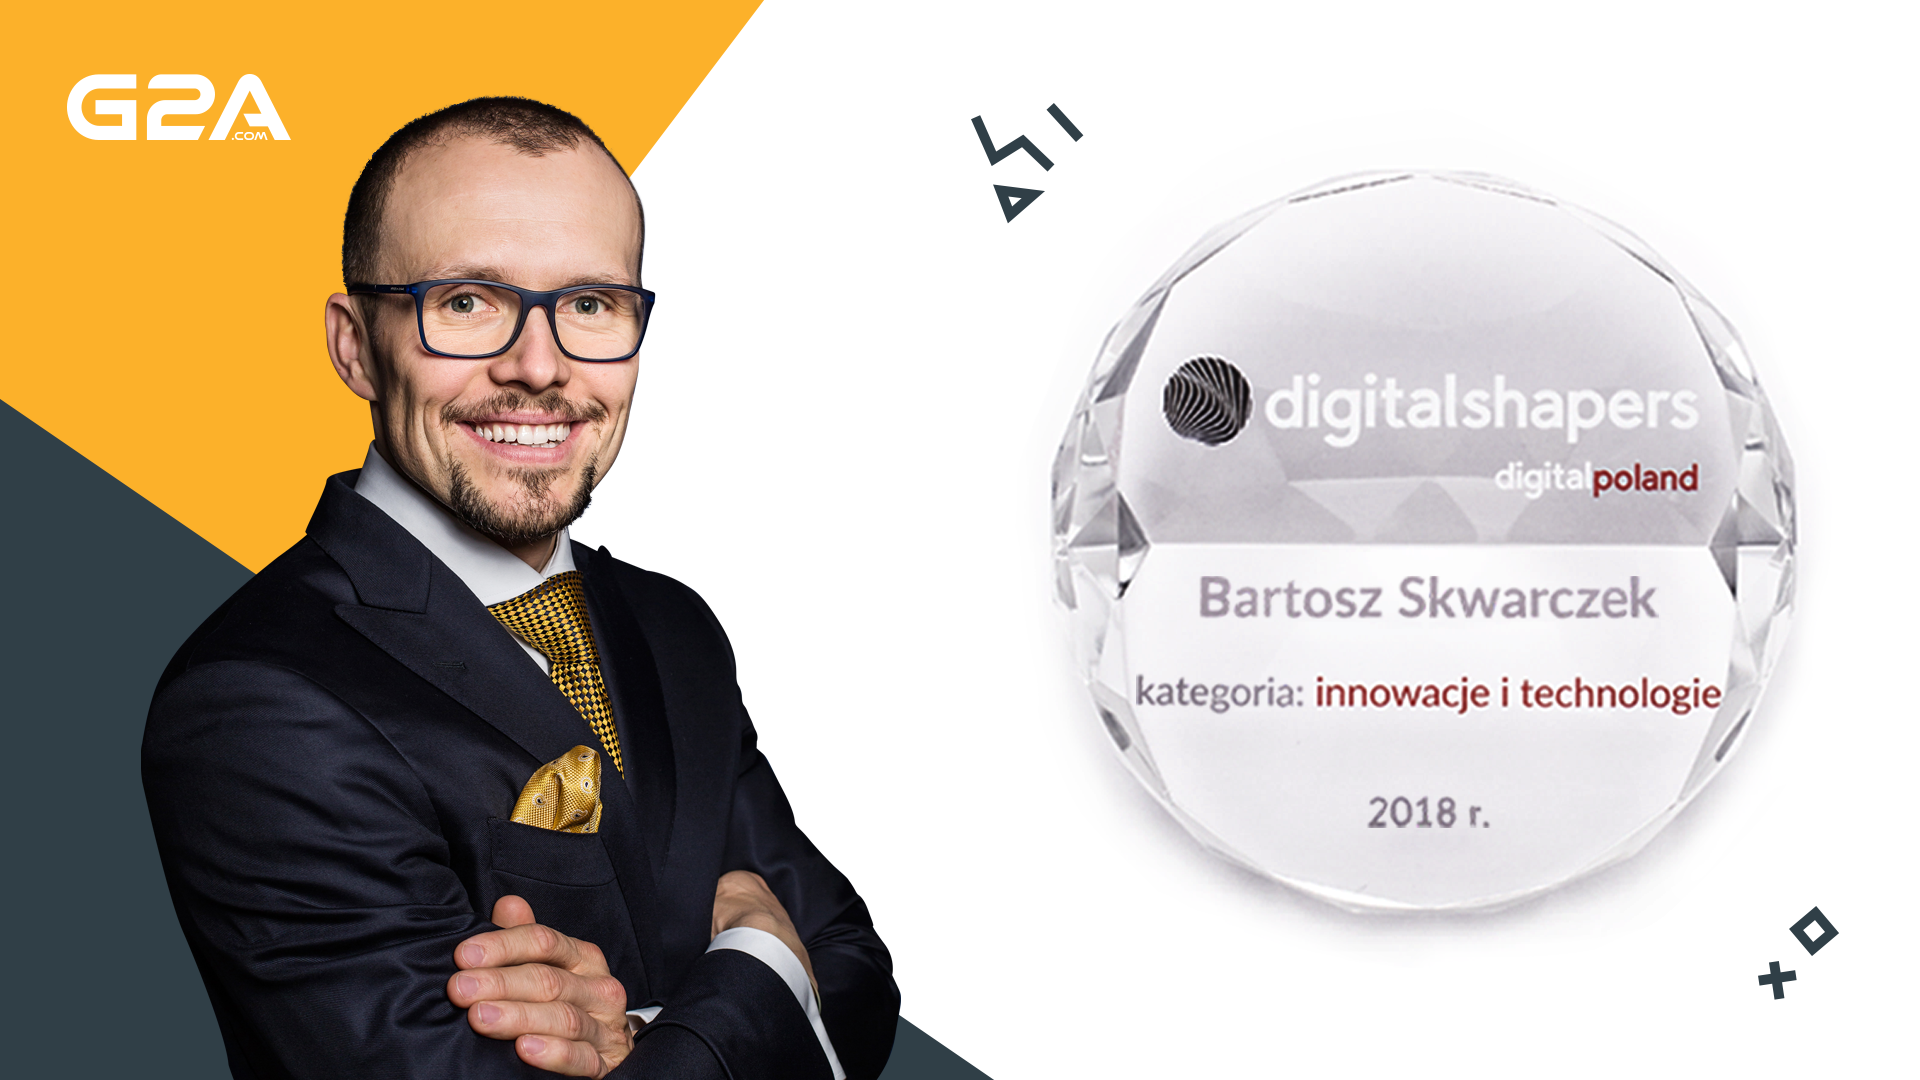 Digital revolution runs in our blood : G2A's CEO, Bartosz Skwarczek, named a Digital Shaper